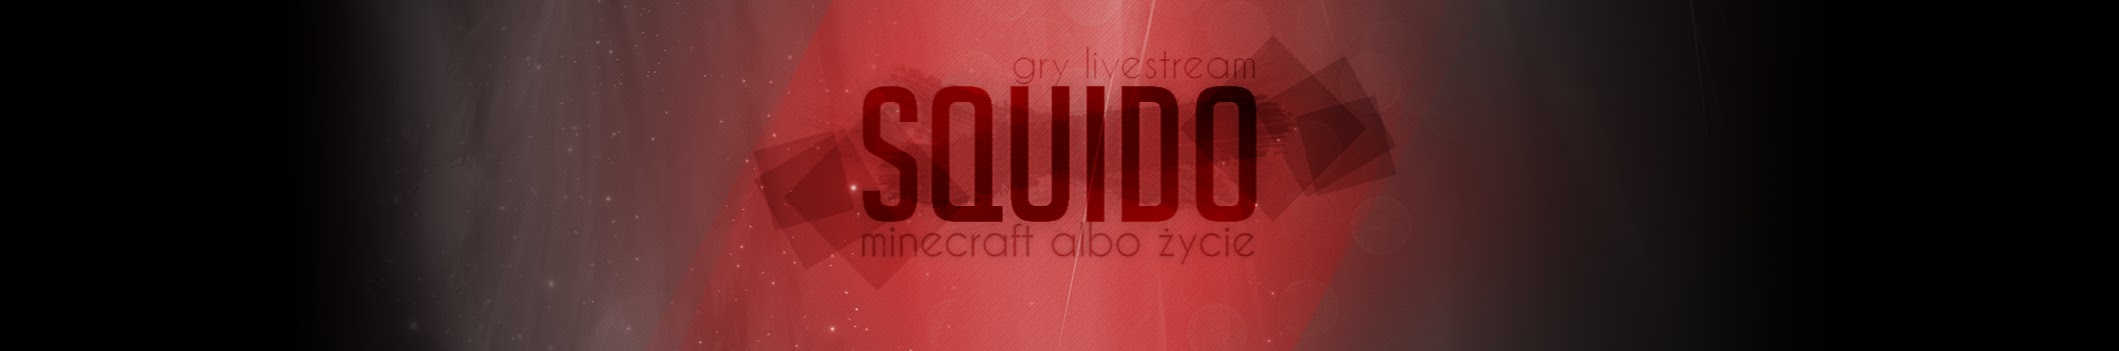 Minecraft SquiDo